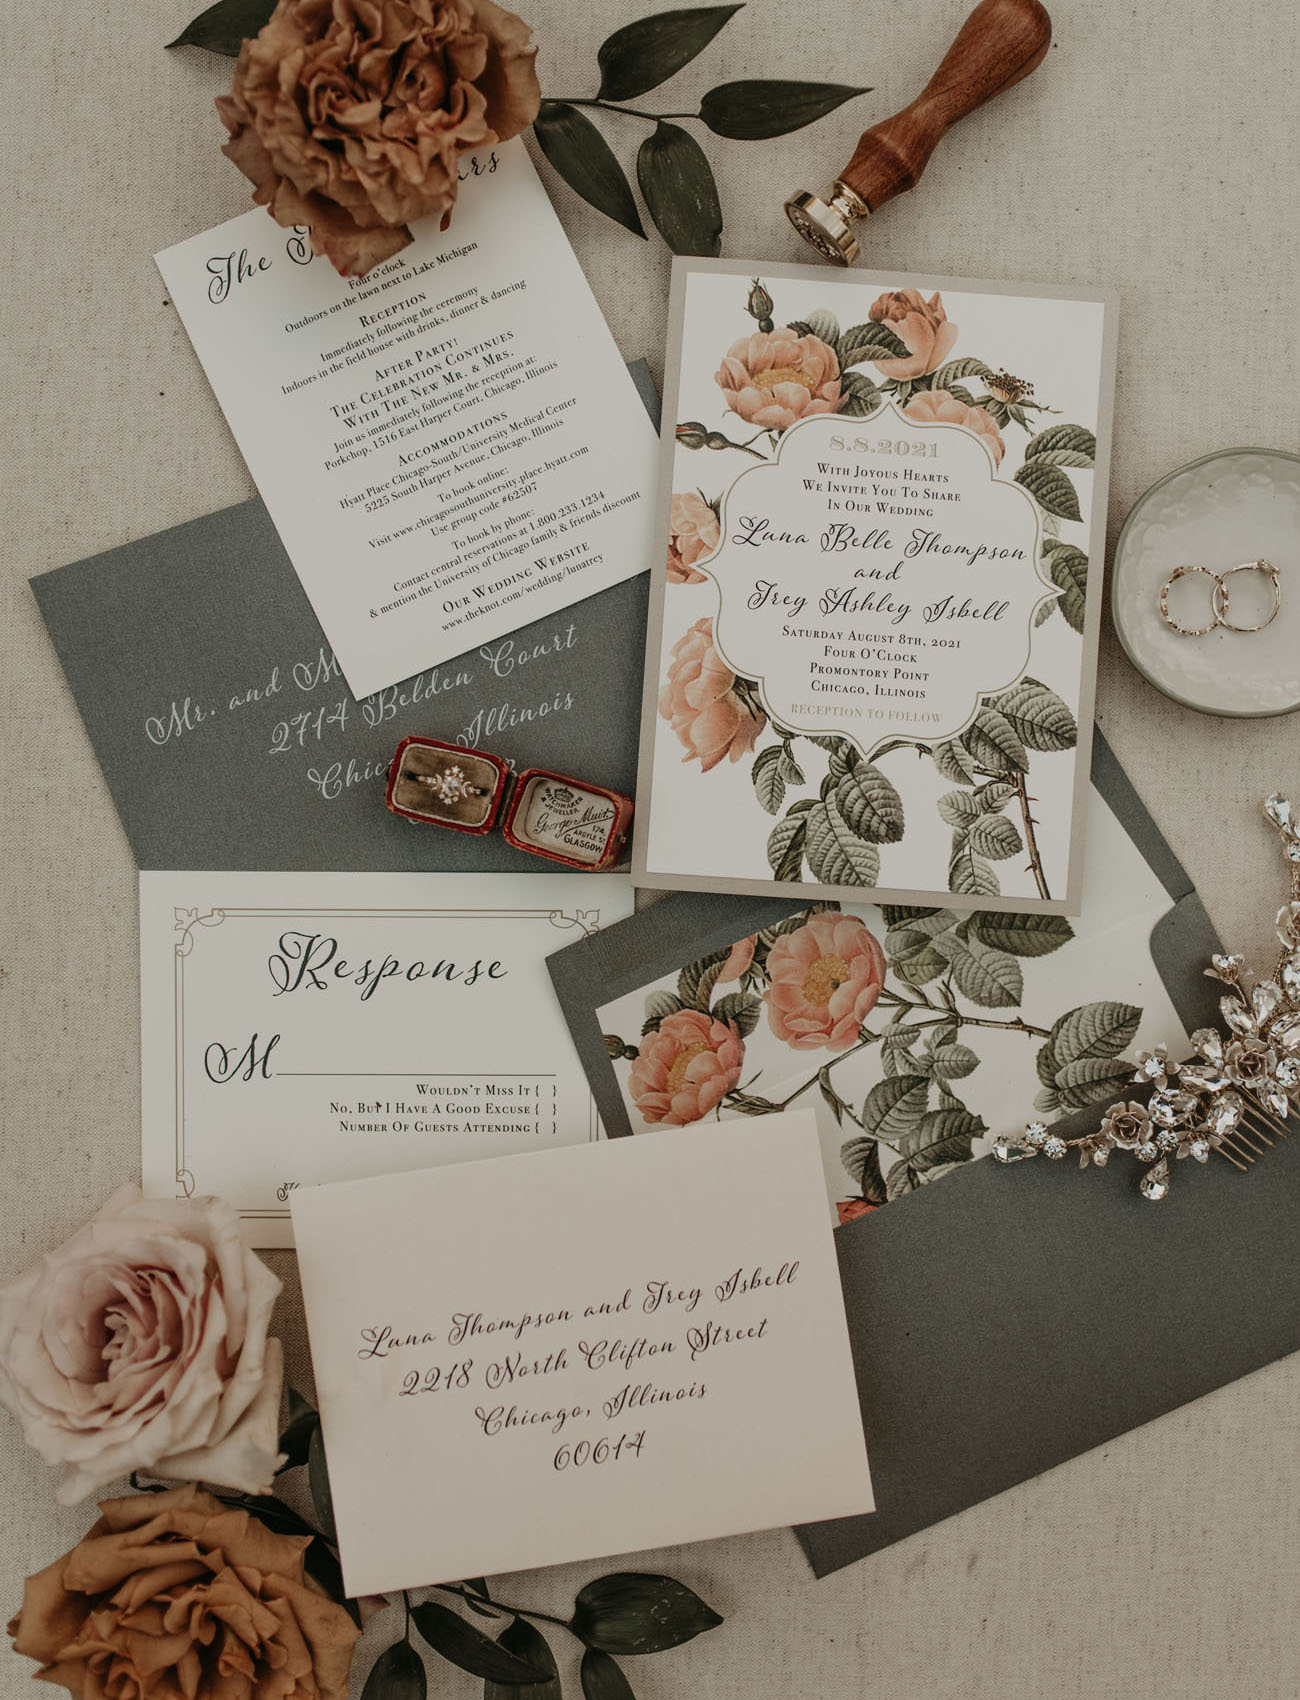 The wedding invitation suite was done in grey, with botanical prints and elegant calligraphy